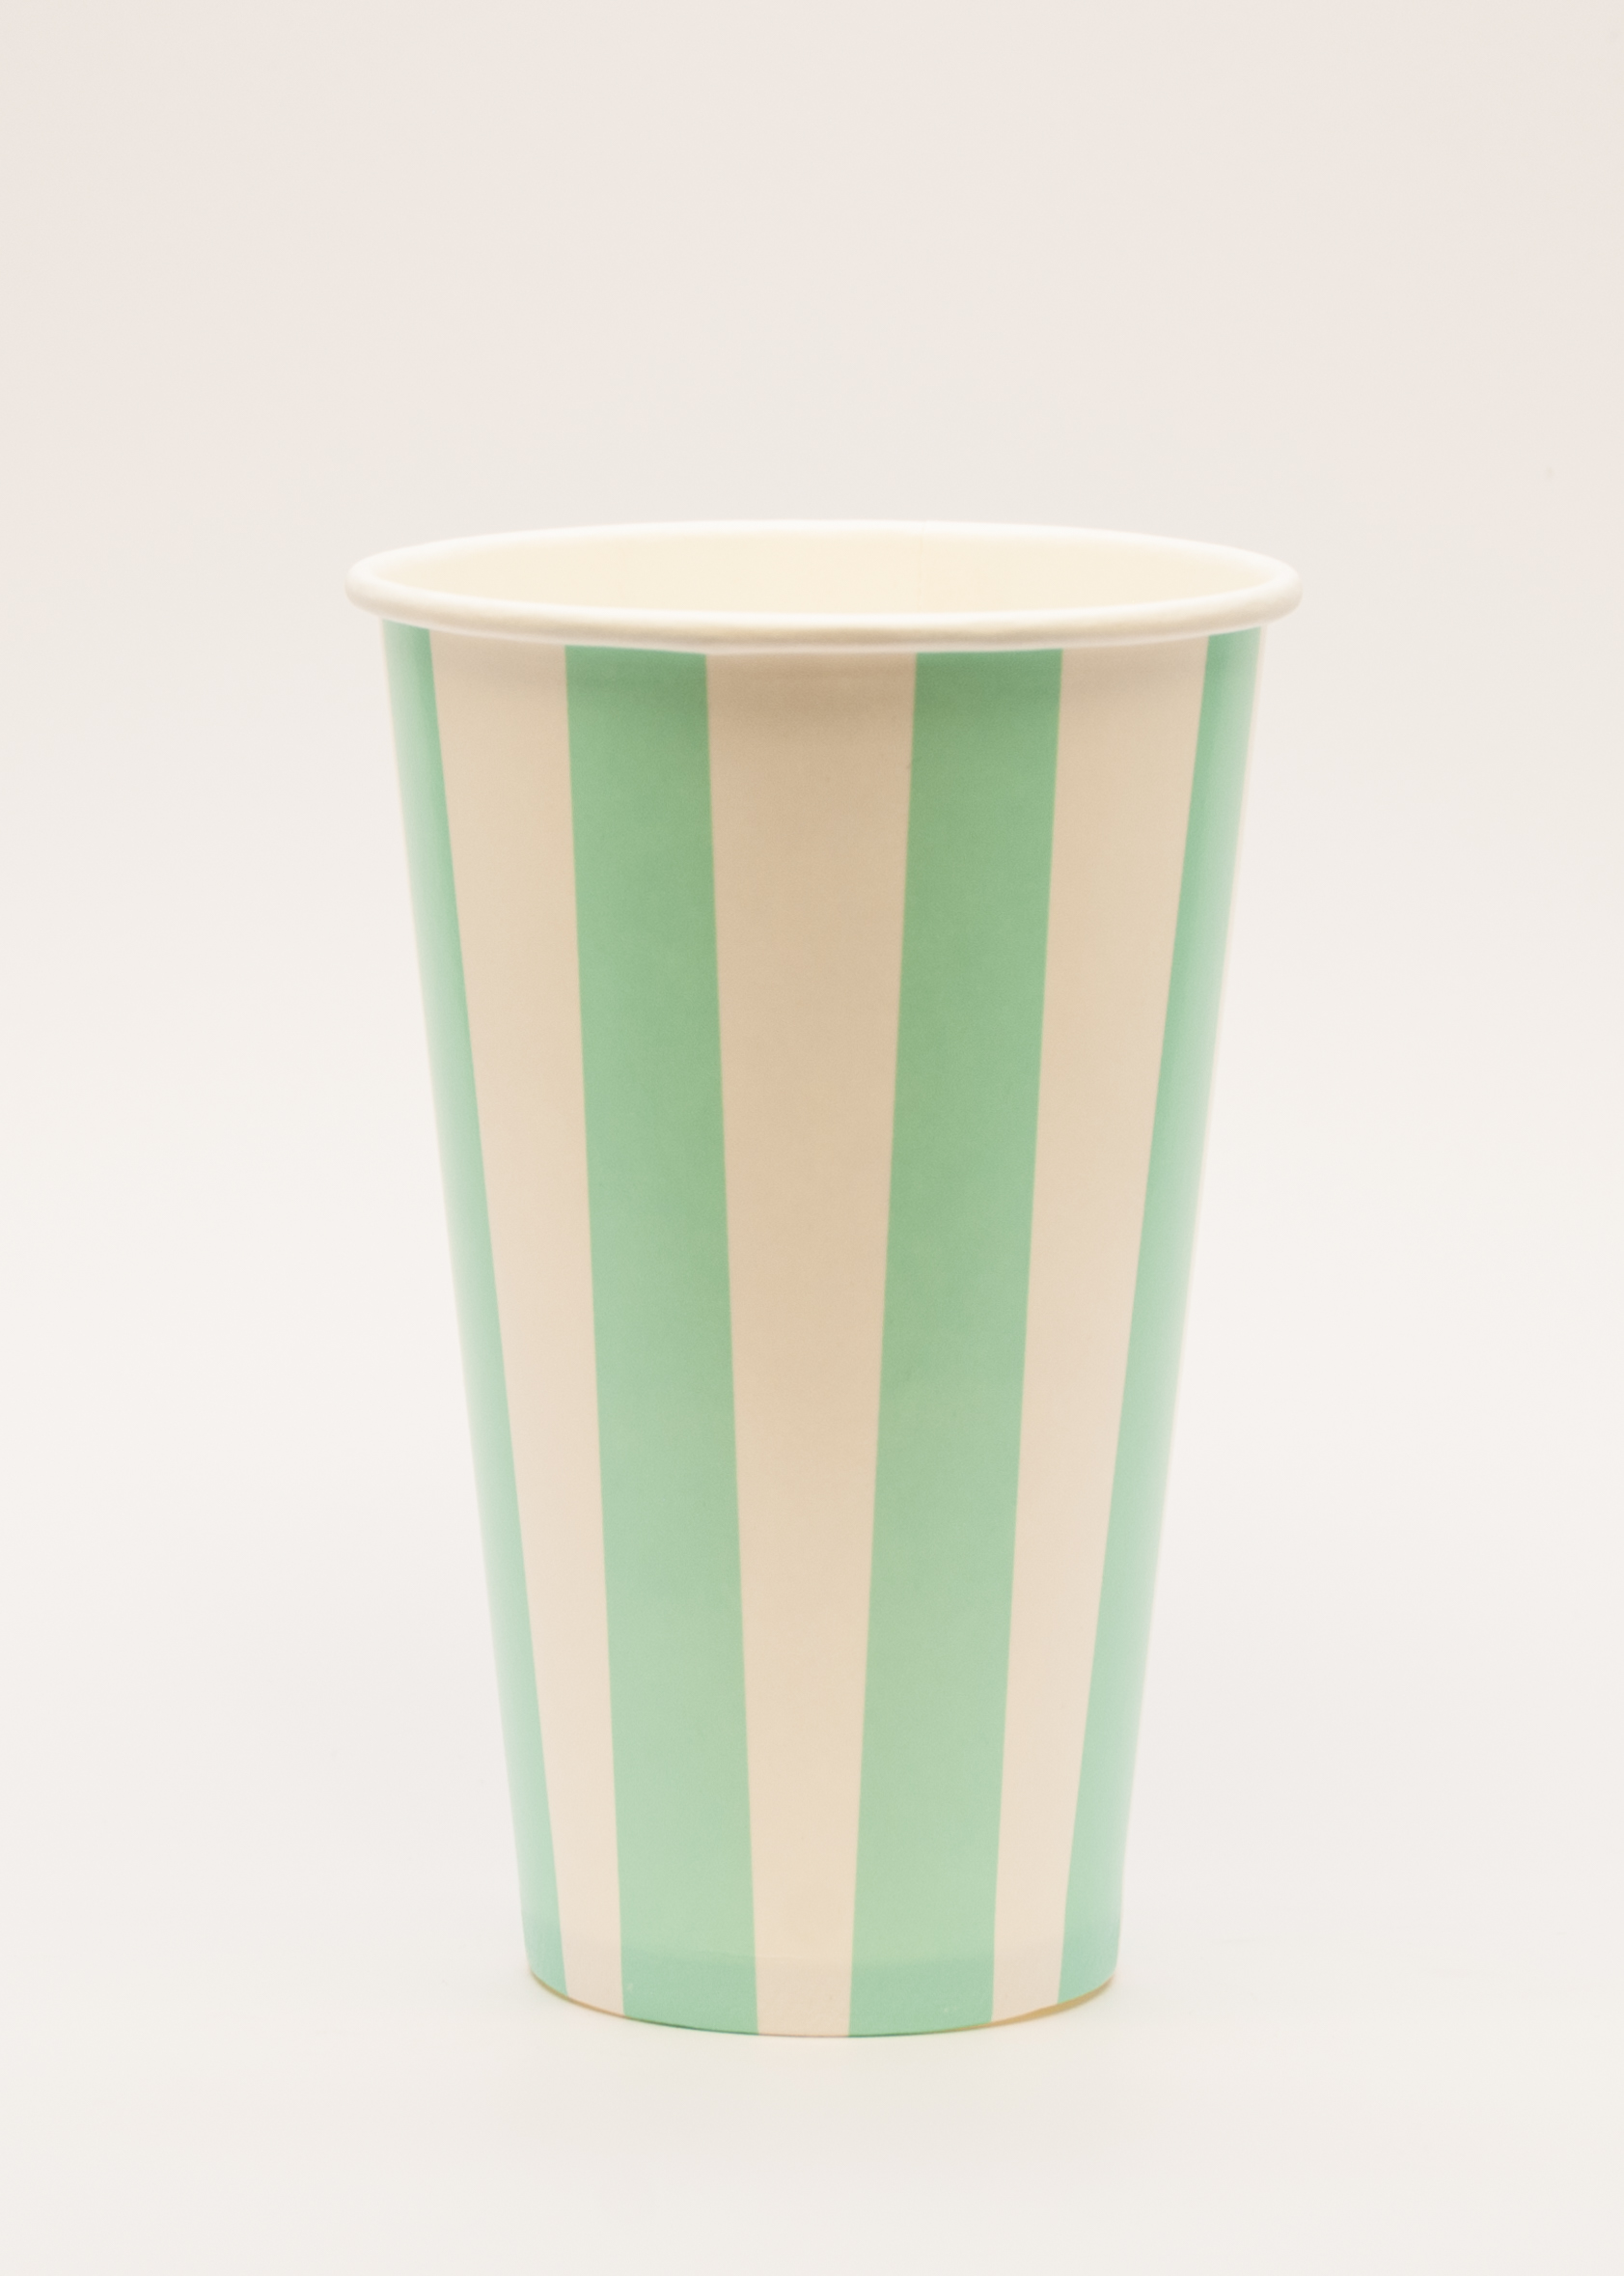 candy paper cups Candy packaging candy cups-baking cups candy cups-baking cups #4 #5, #6 #9d, #105 wafer paper (often called rice paper.